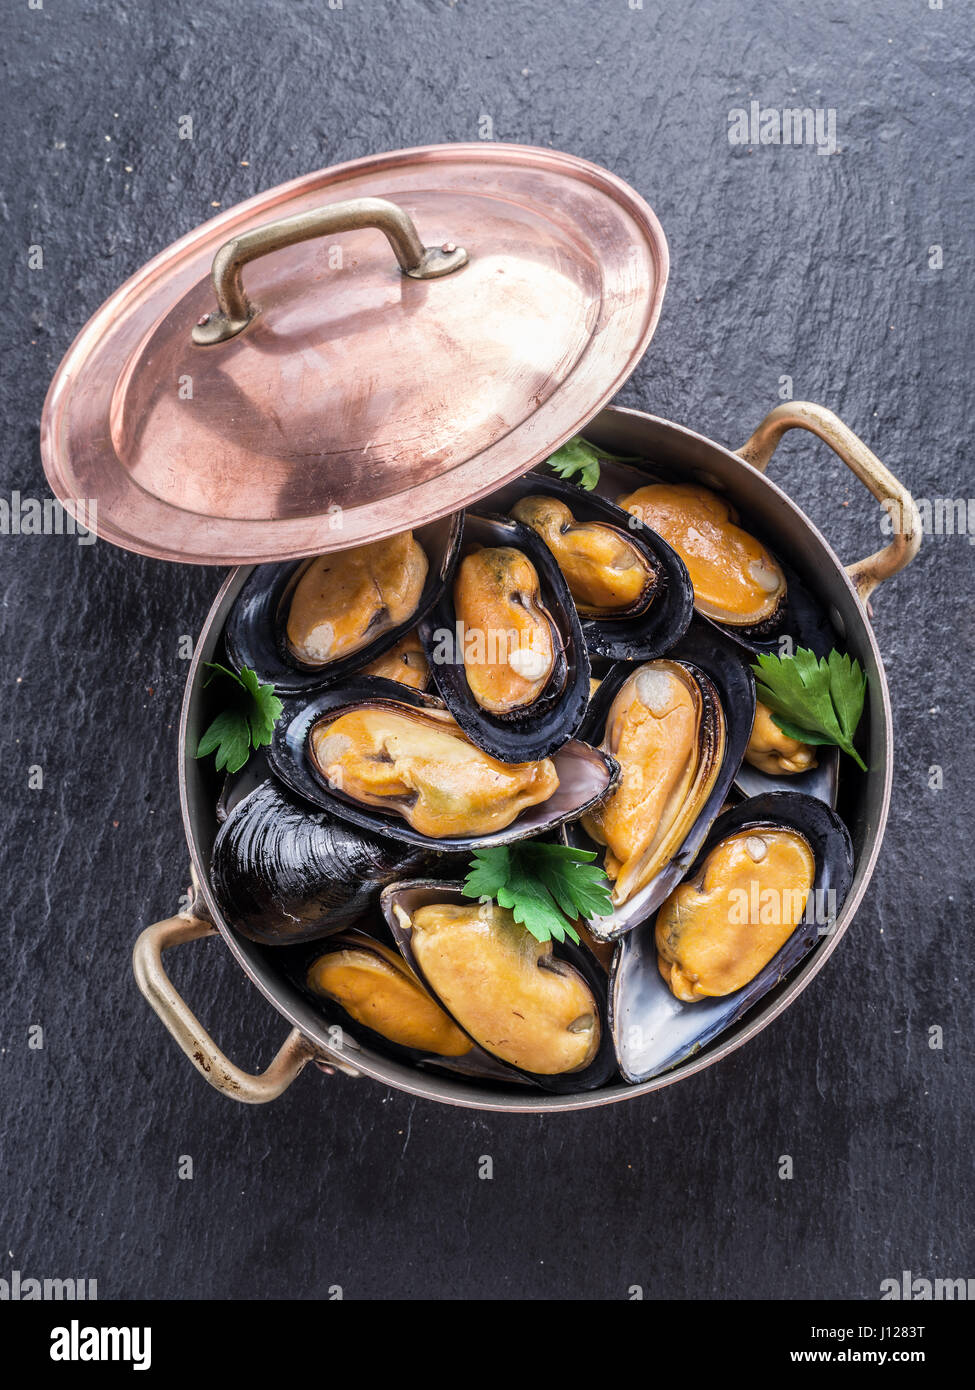 Boiled mussels in copper pan on the graphite background. - Stock Image